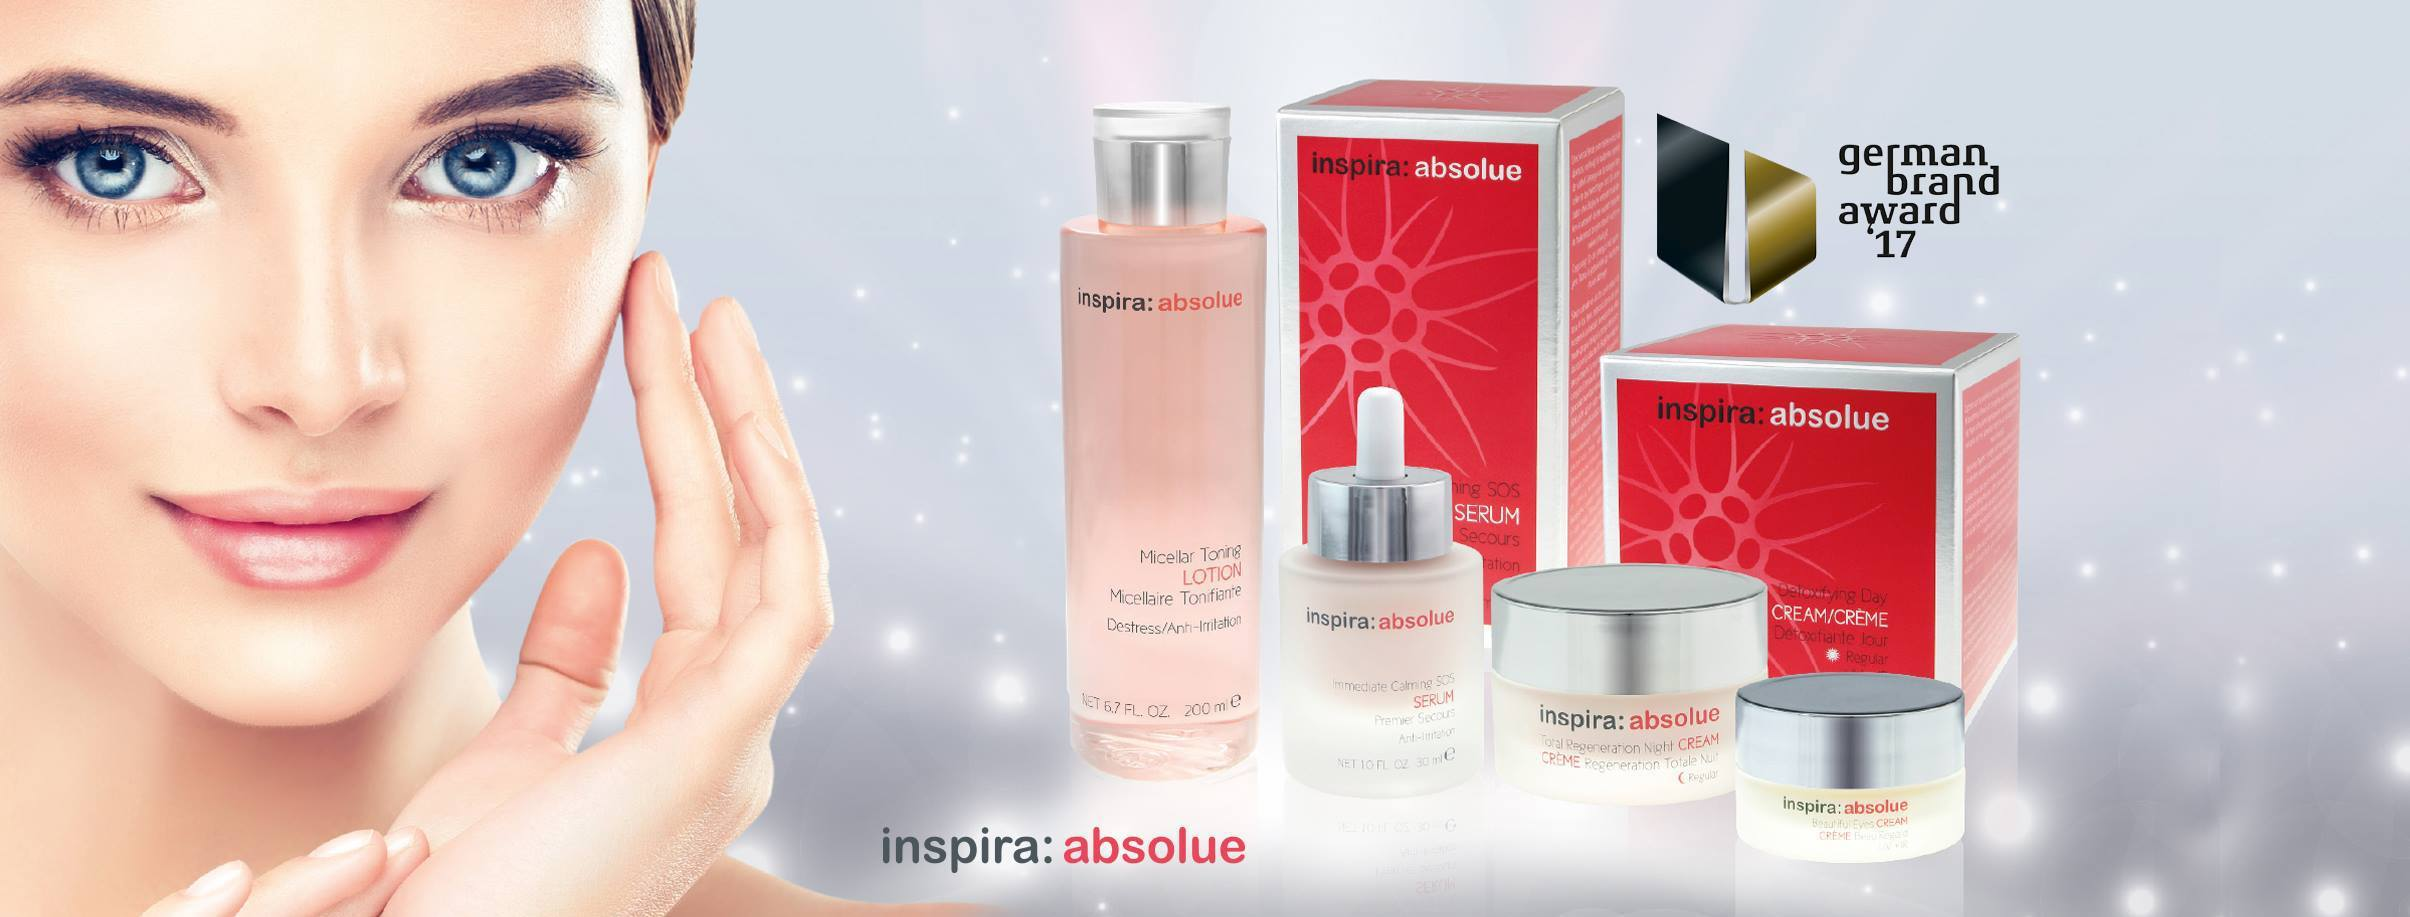 Inspira absolue treat and prevent skin burnout